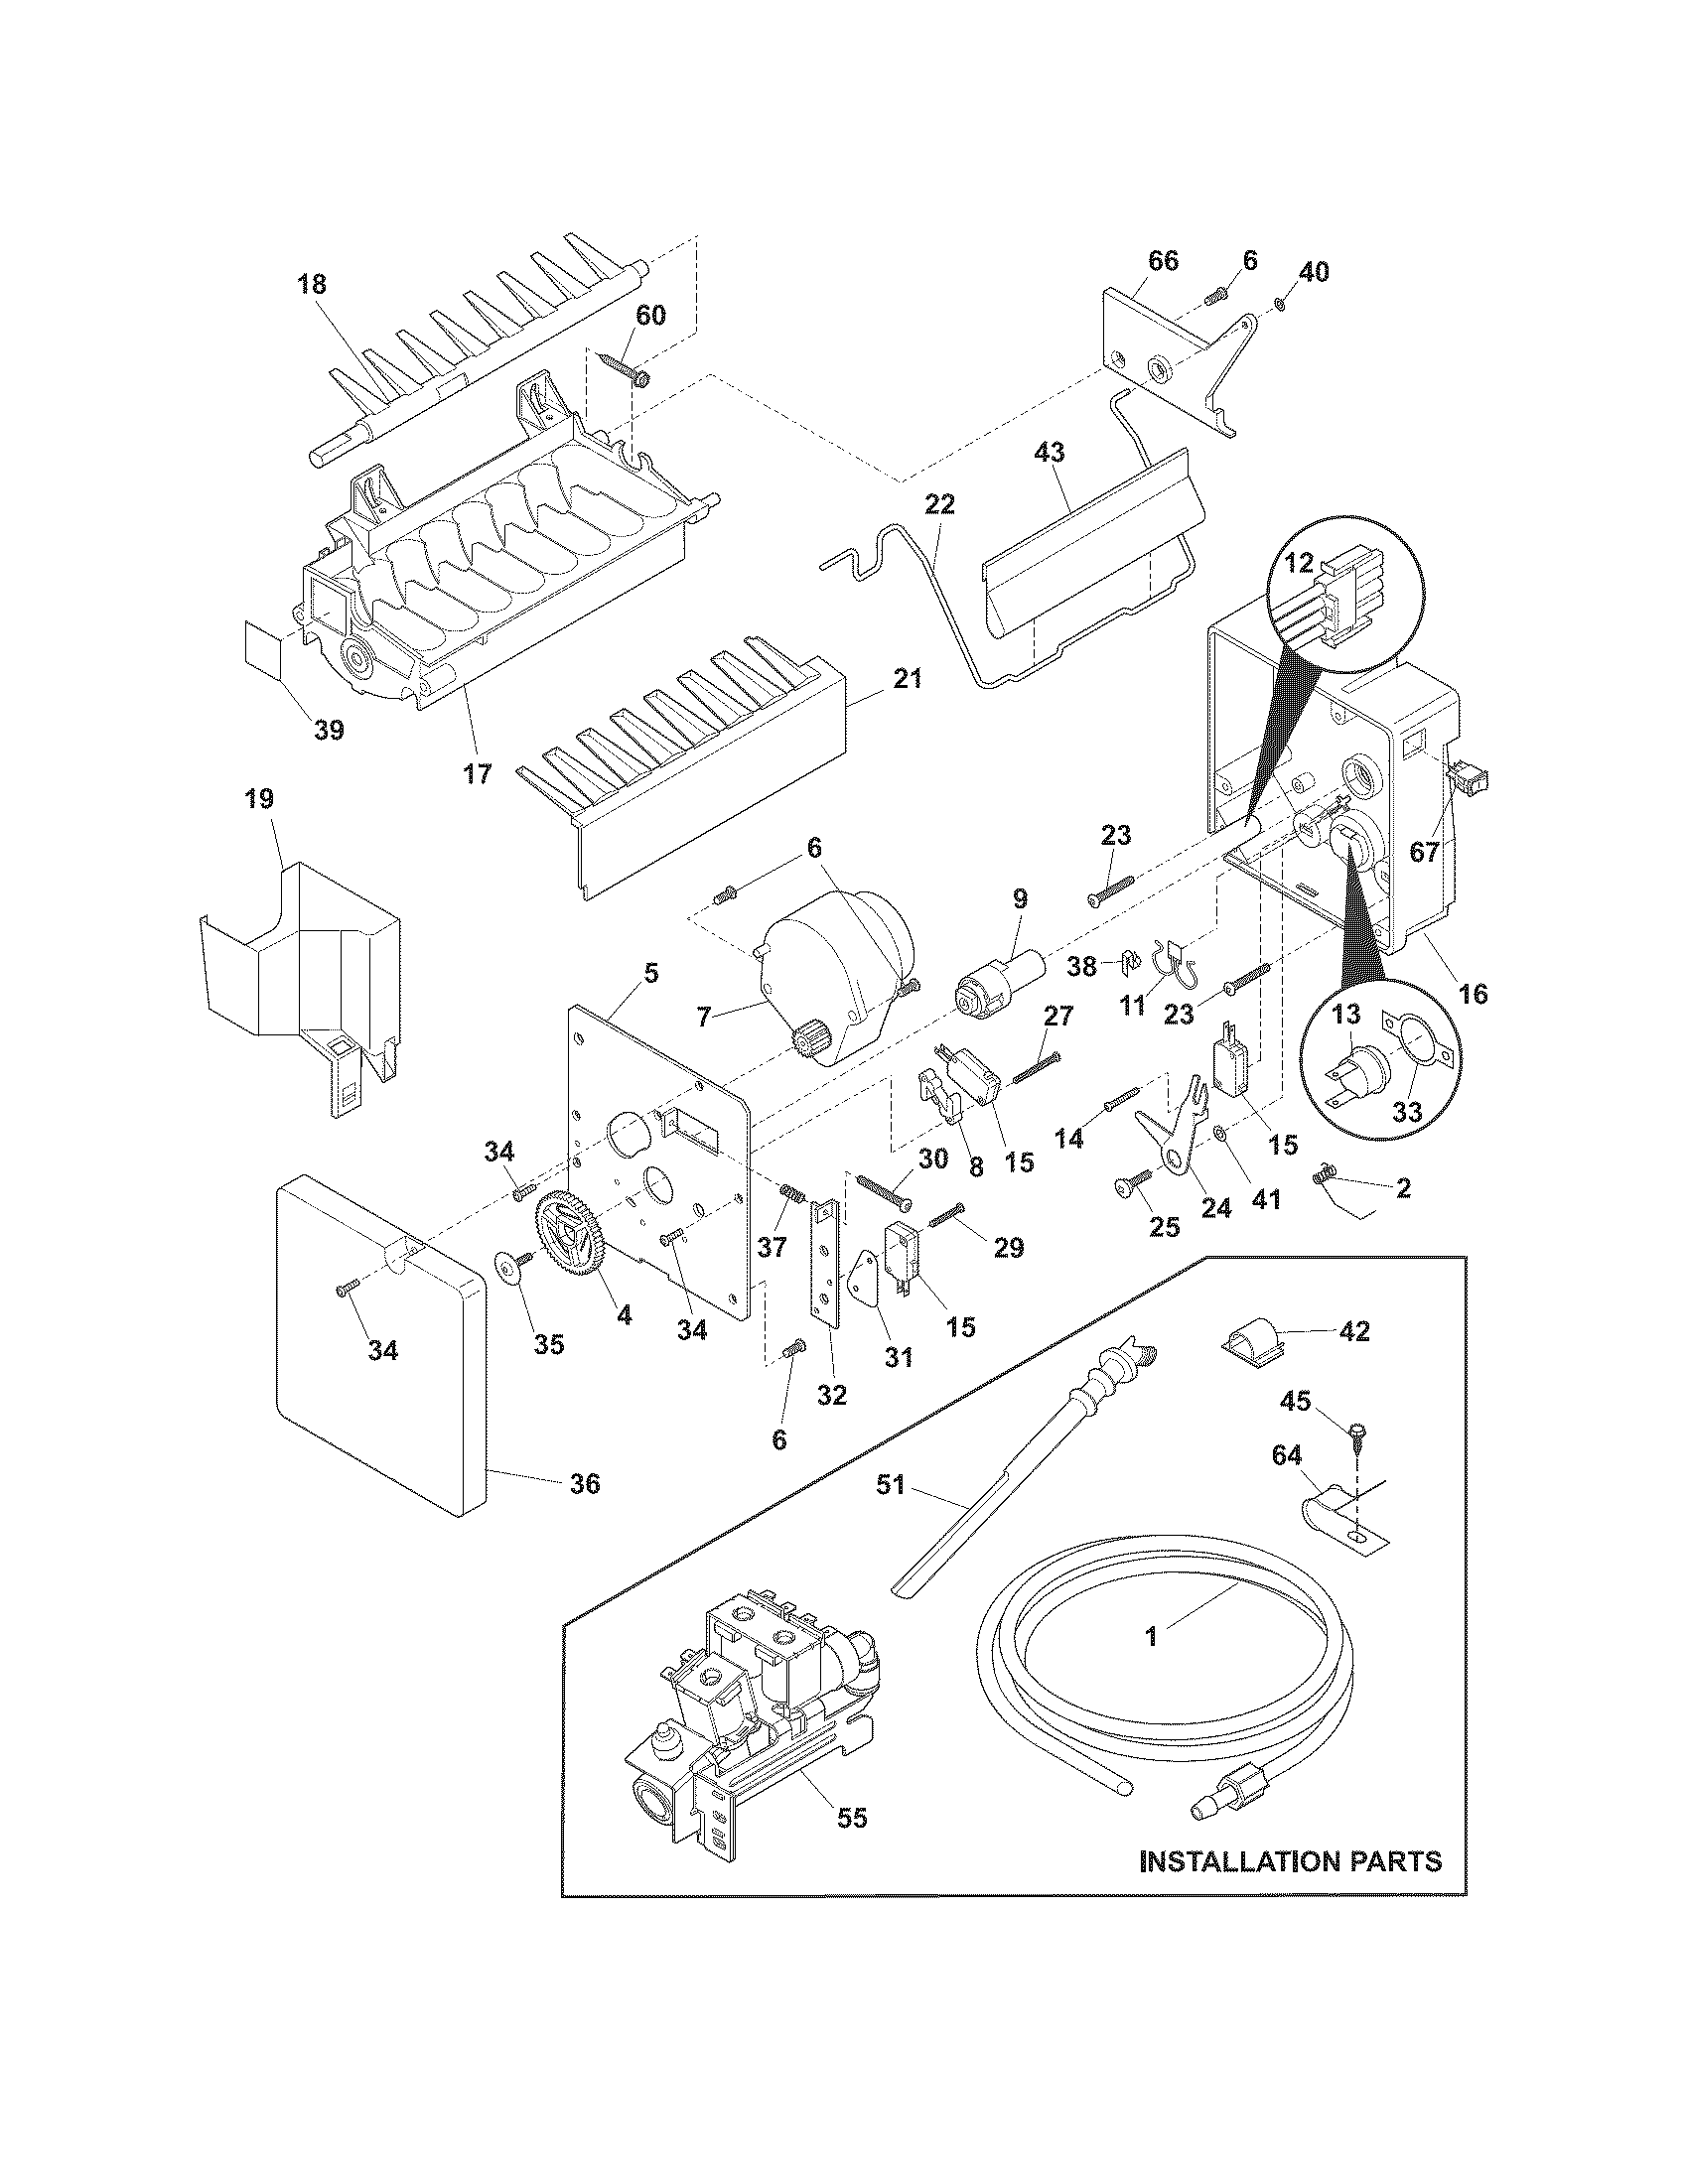 ICE MAKER Diagram & Parts List for Model fghs2631pf3